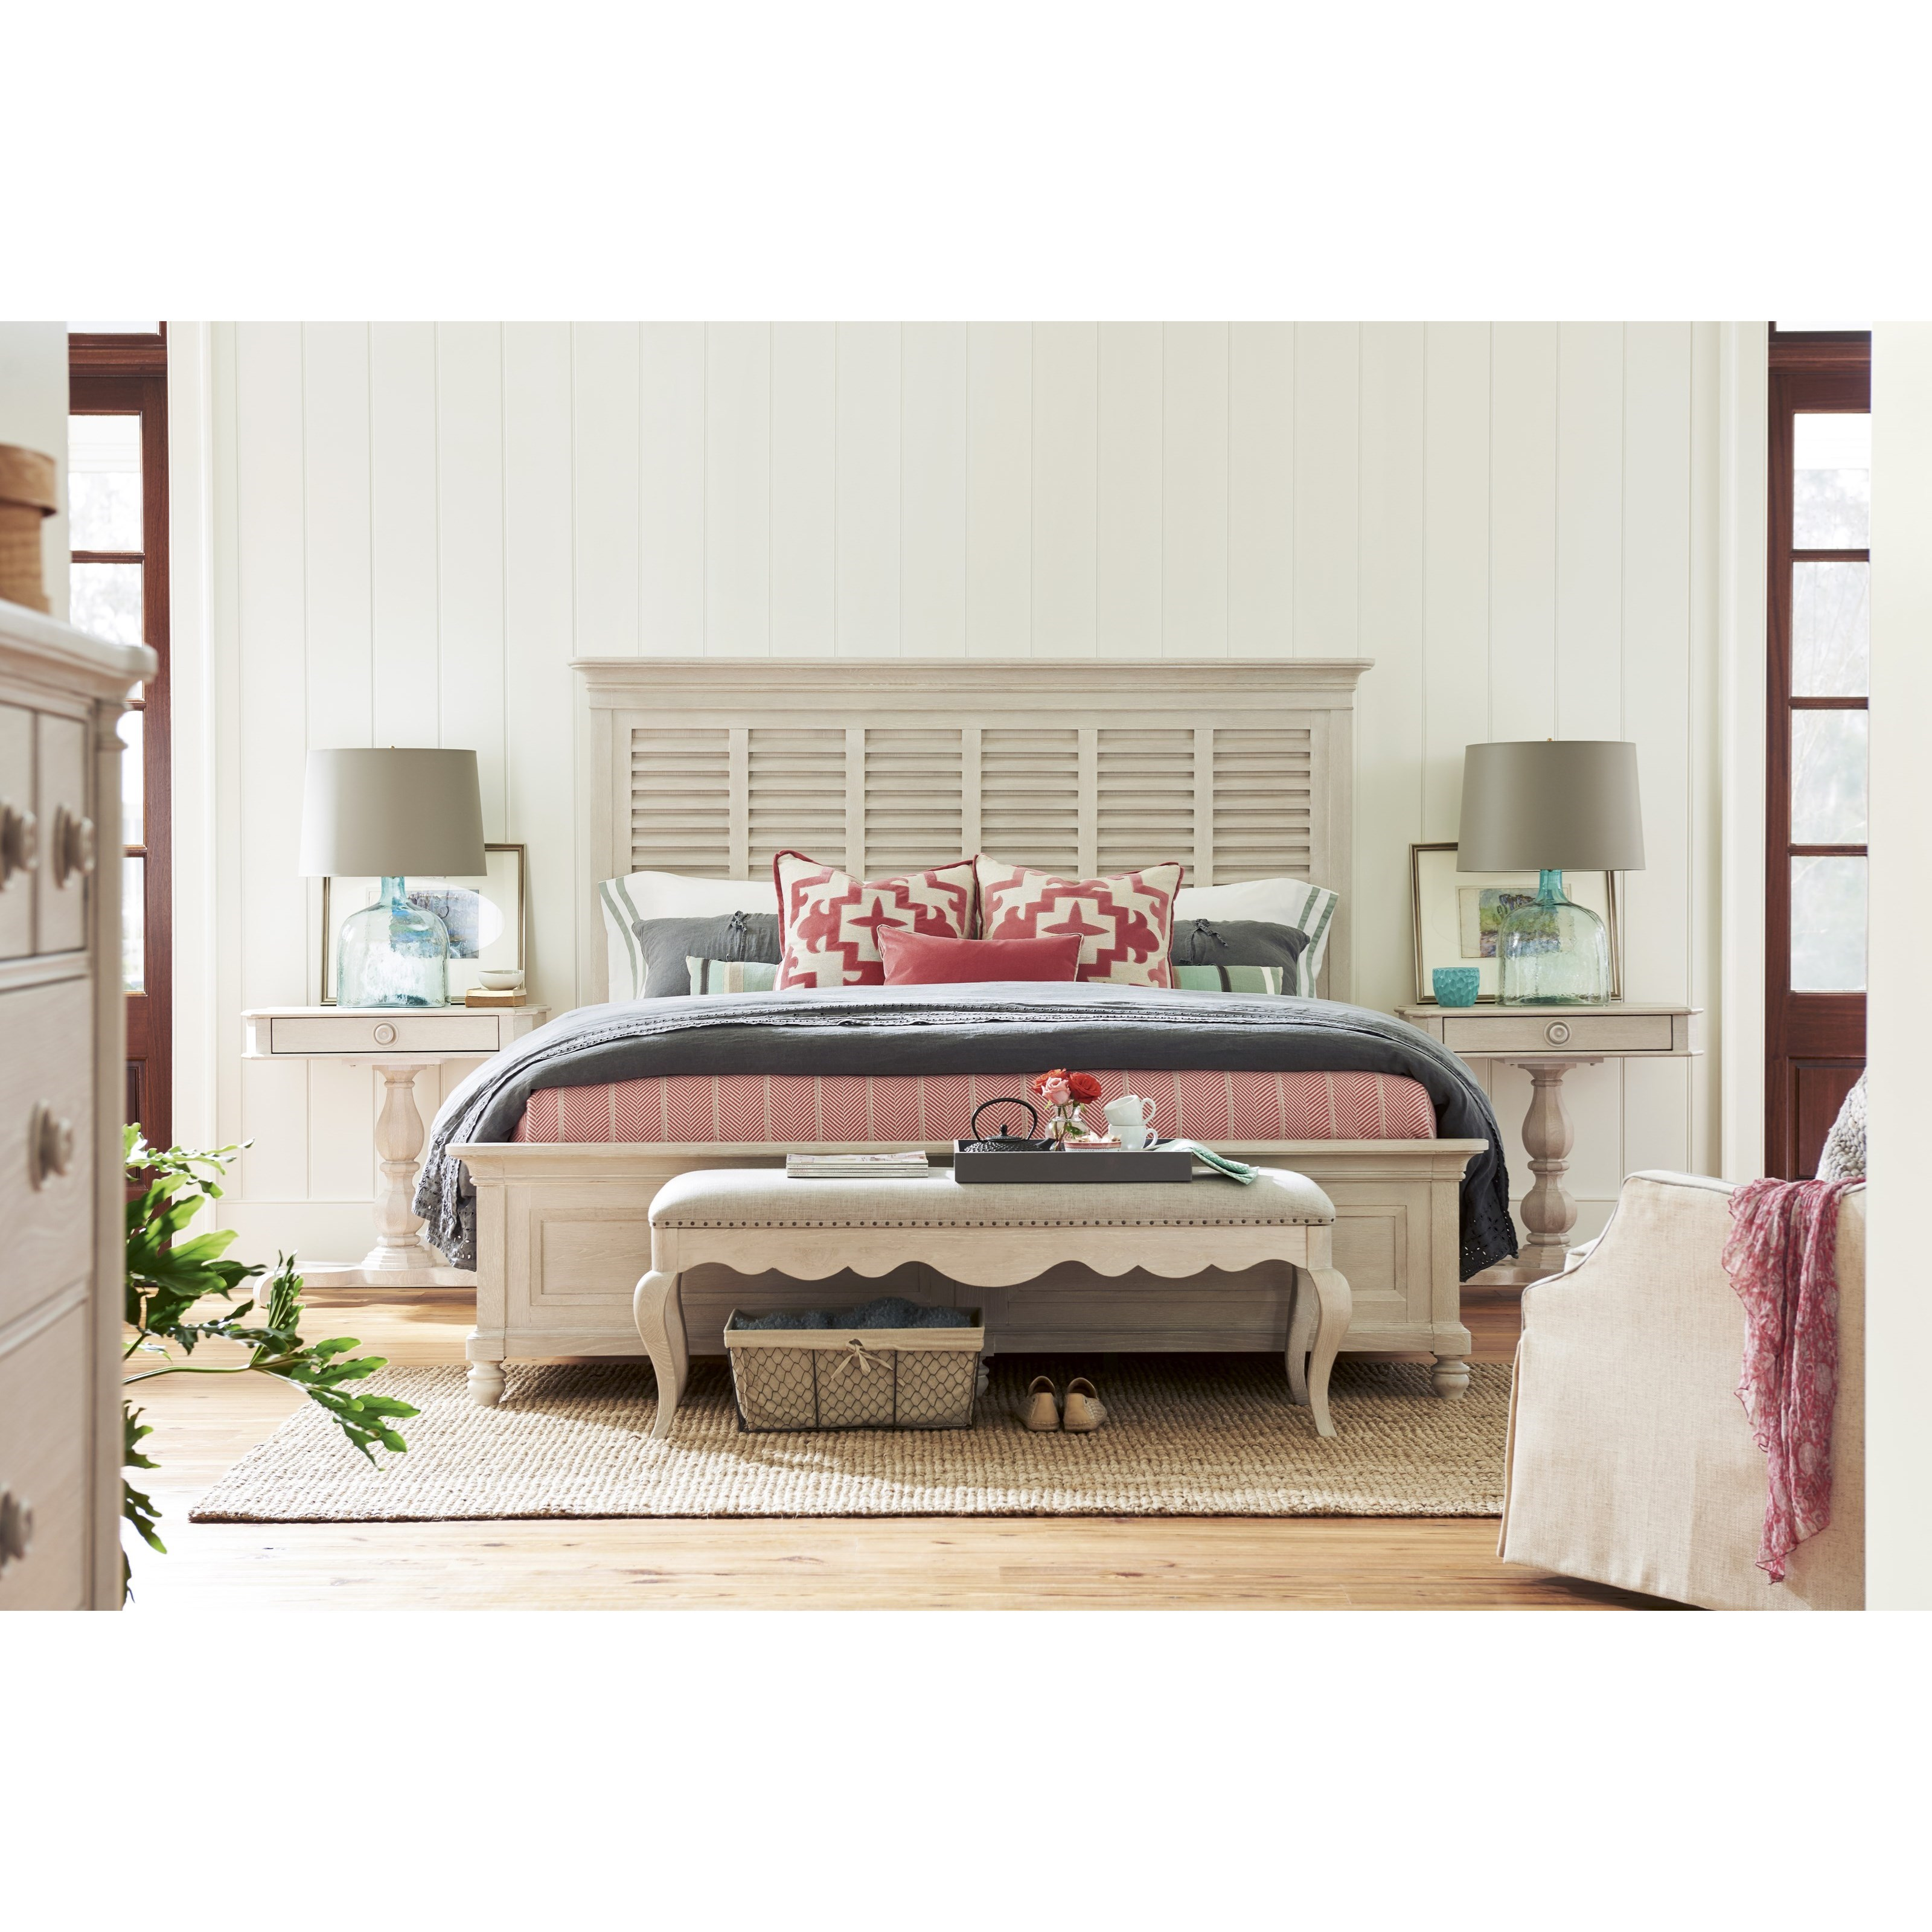 Paula Deen By Universal Bungalow 795210b Queen Cottage Bed Baer 39 S Furniture Panel Beds